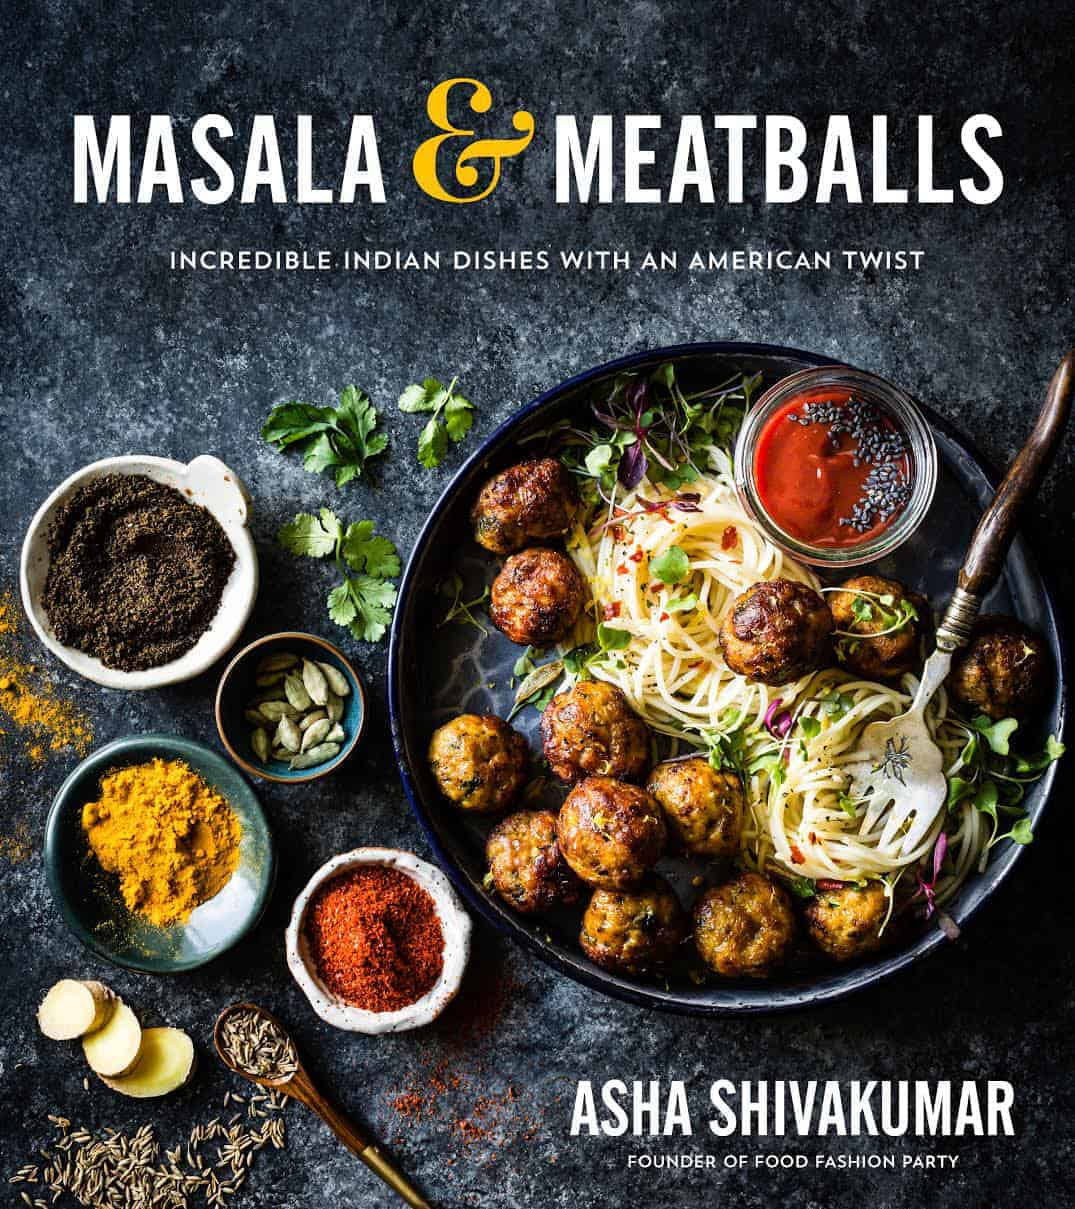 Masala & Meatballs cookbook cover